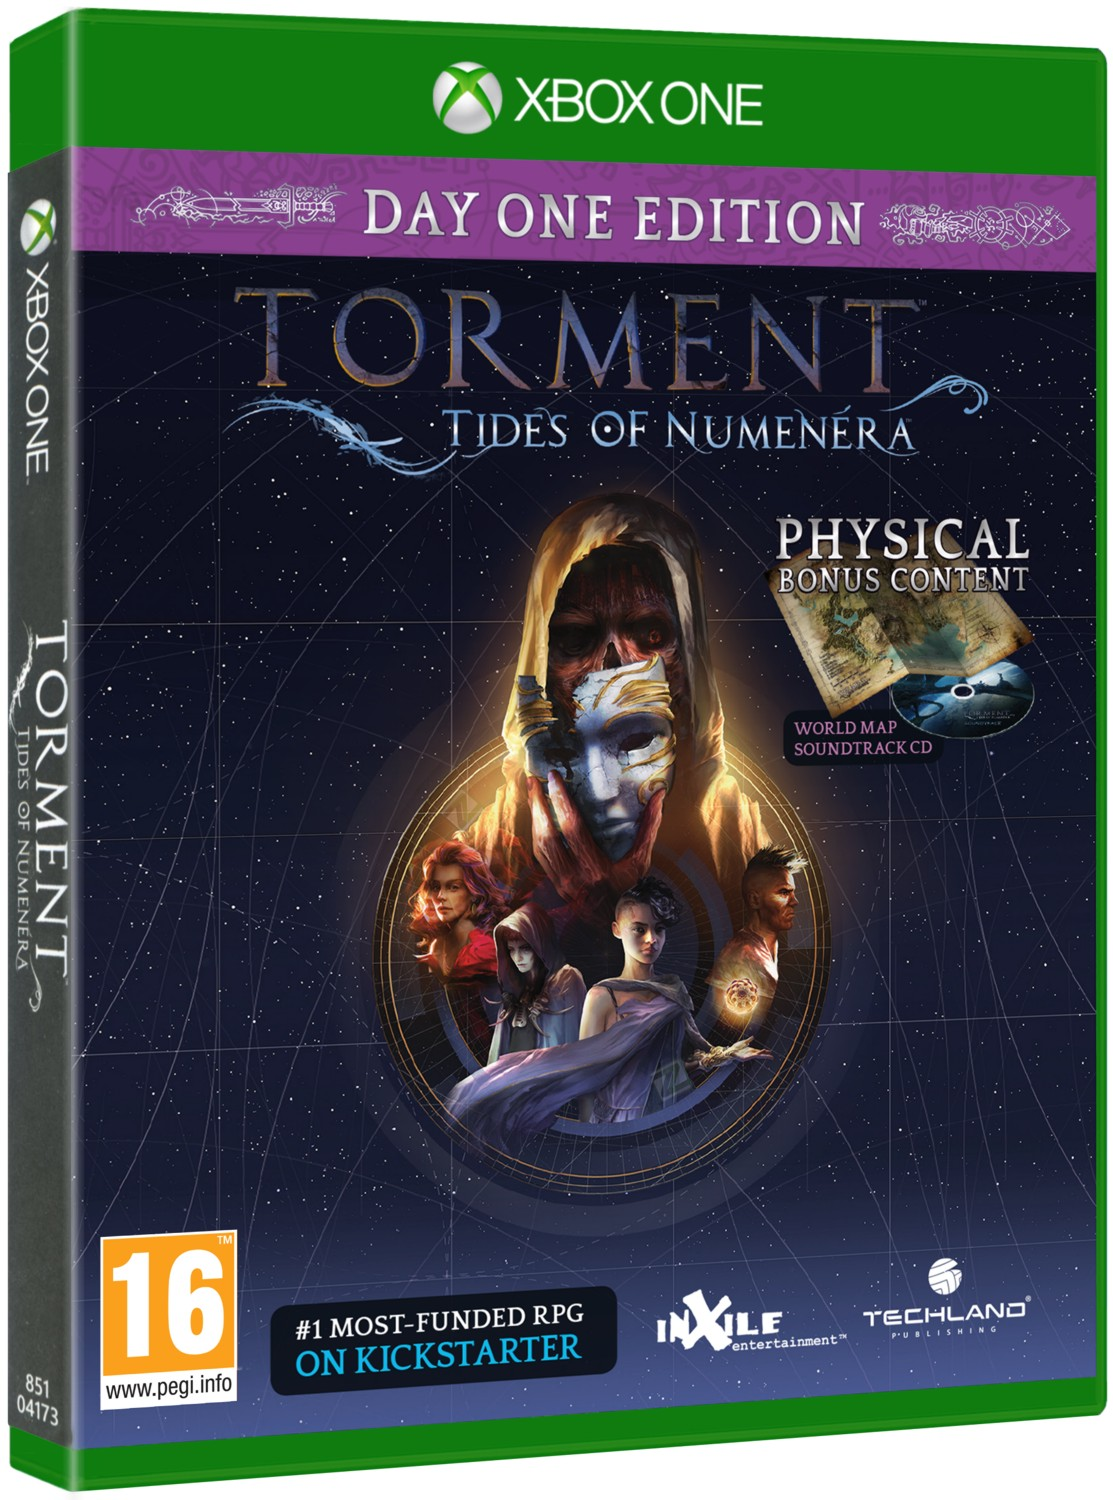 TORMENT: TIDES OF NUMENERA - Day One Edition - Xbox One